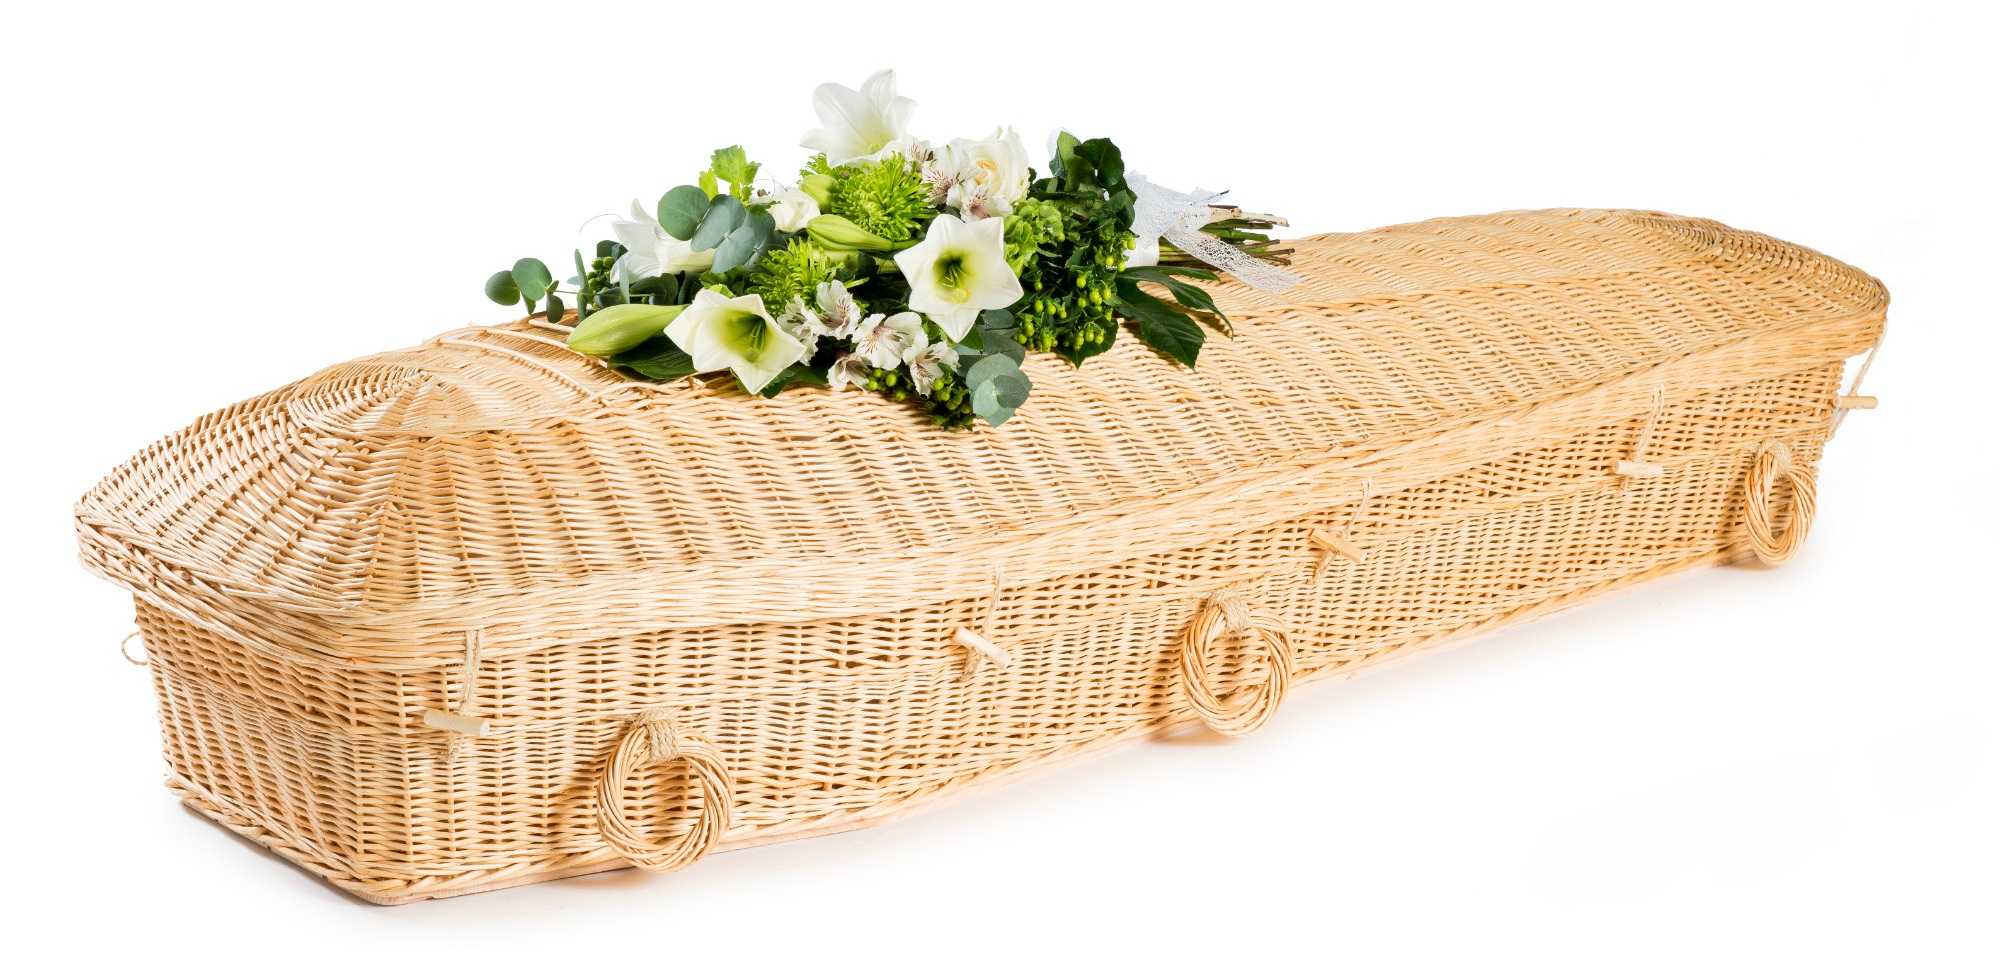 Willow Pod Coffin - Available from thinkwillow.com